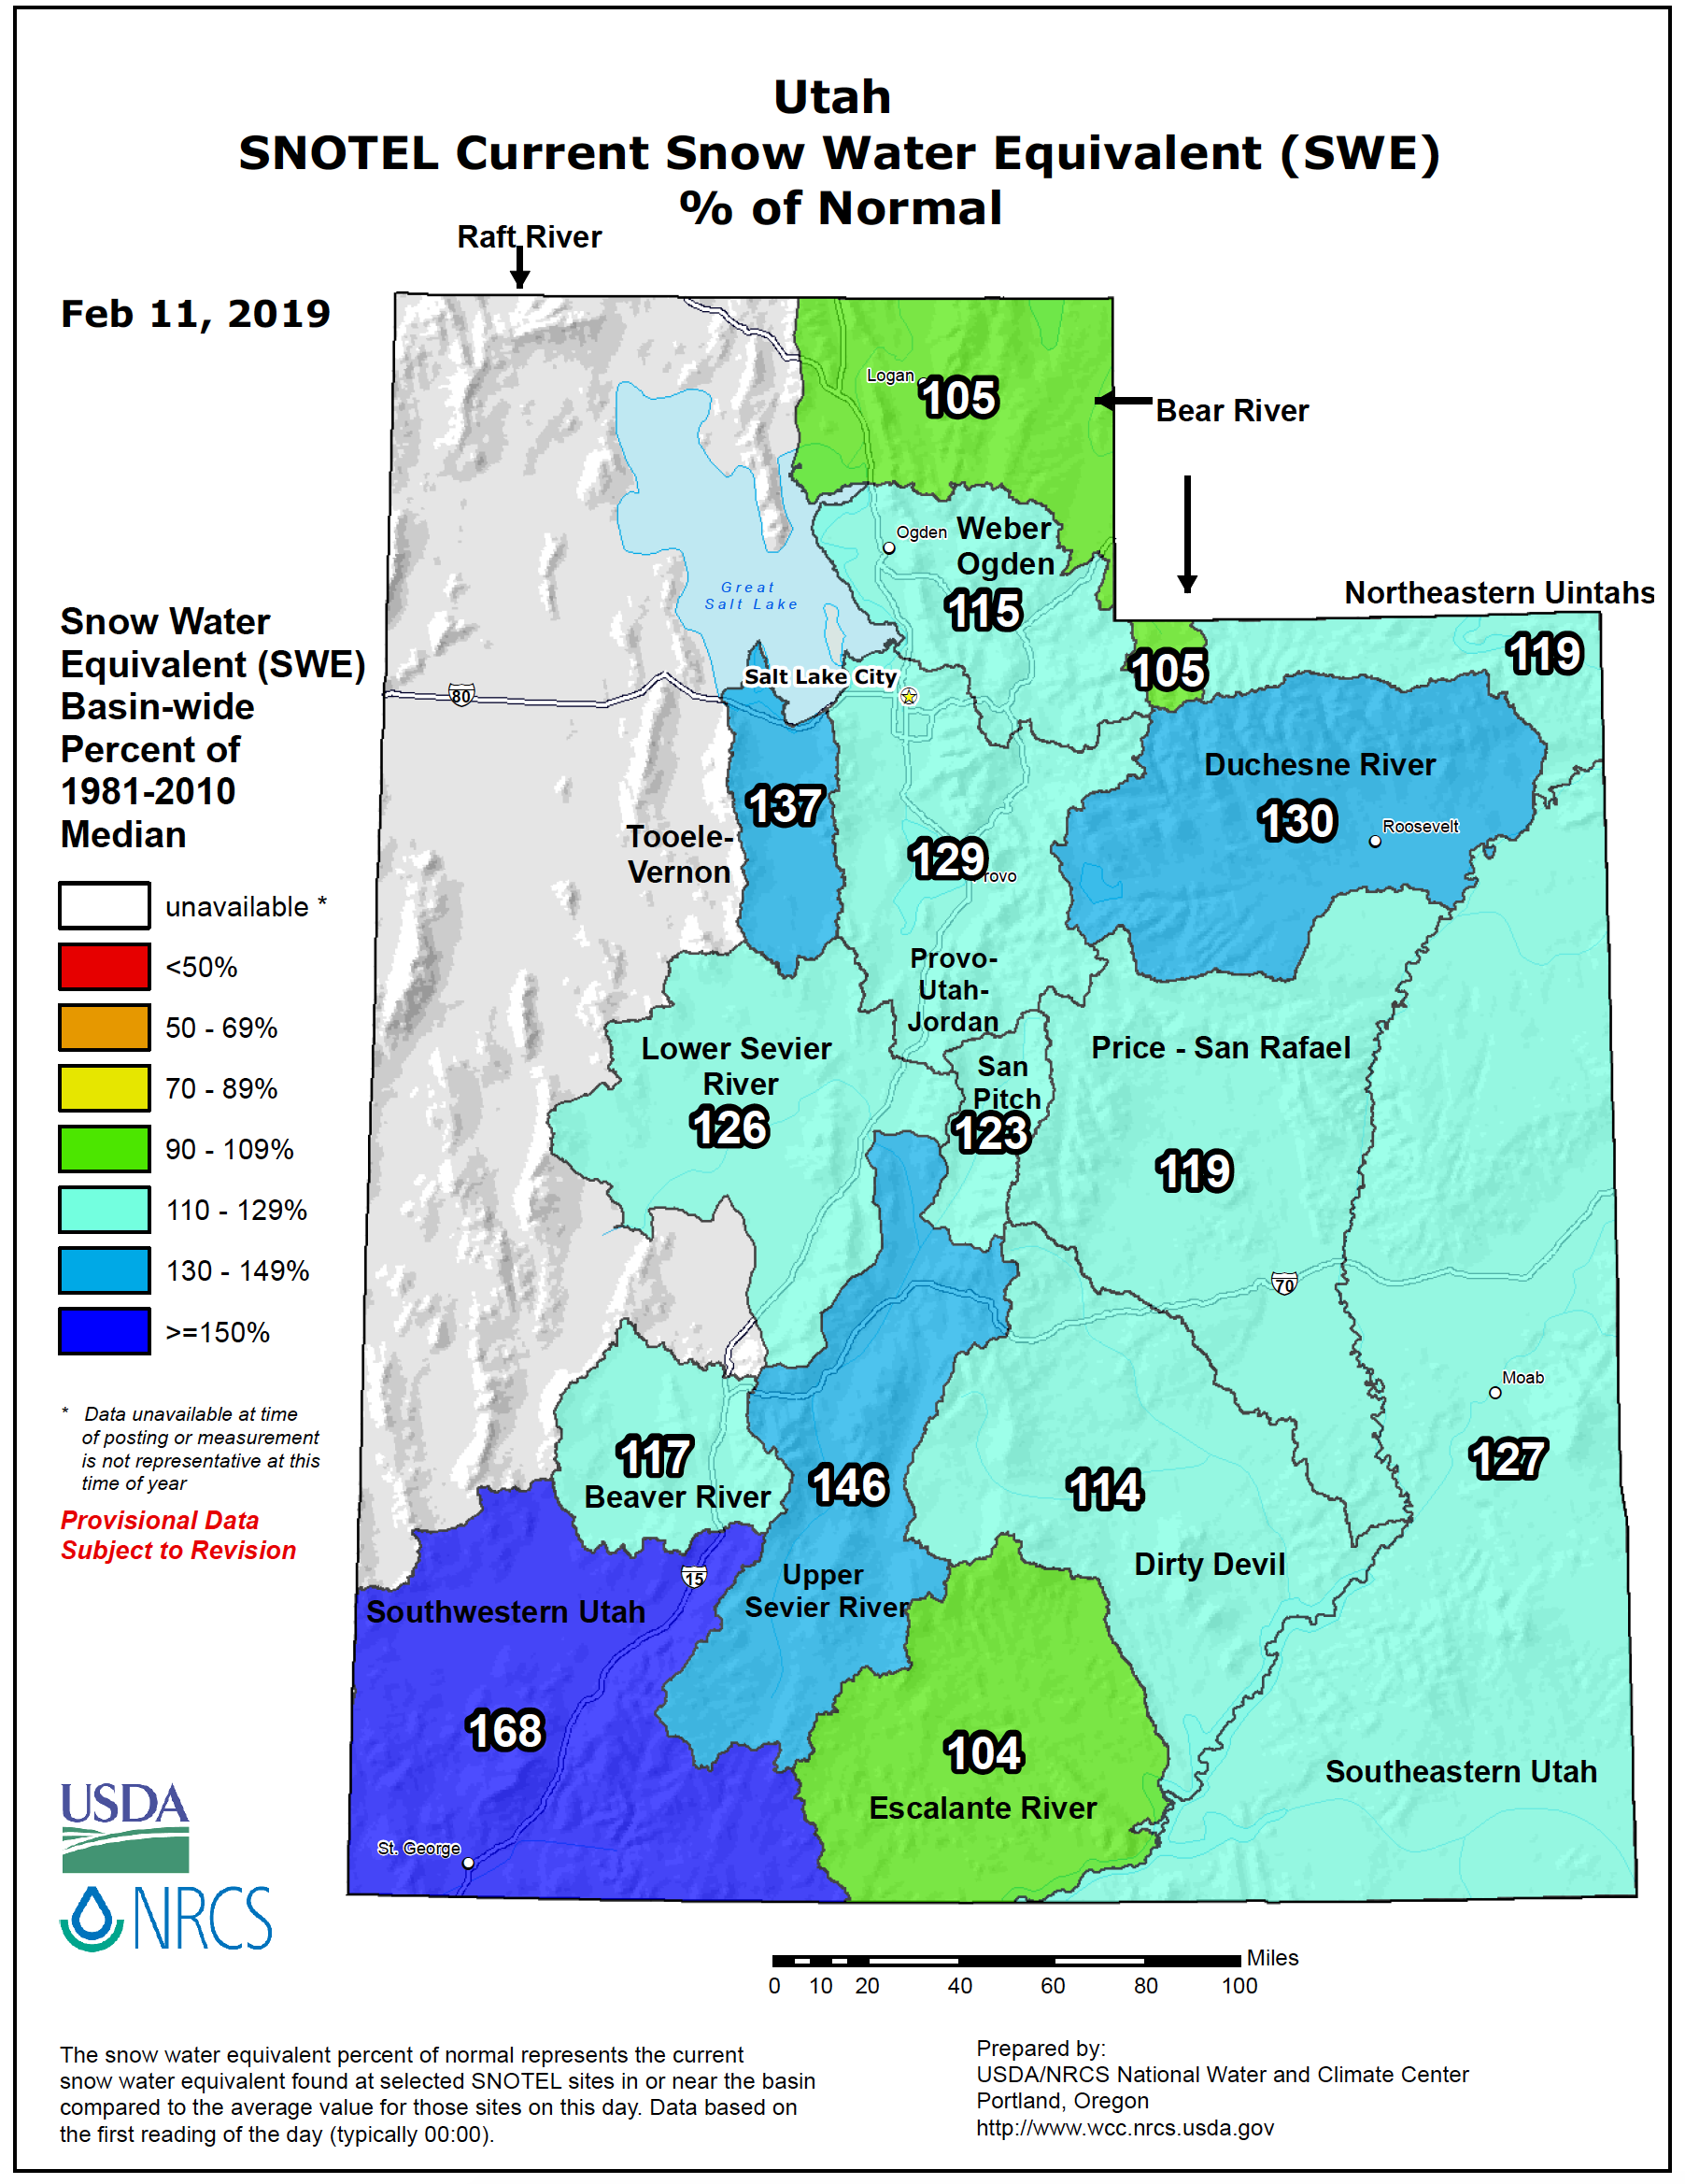 Snow Water Equivalent percentage of normal for basins in Utah, plot via www.wcc.nrcs.usda.gov